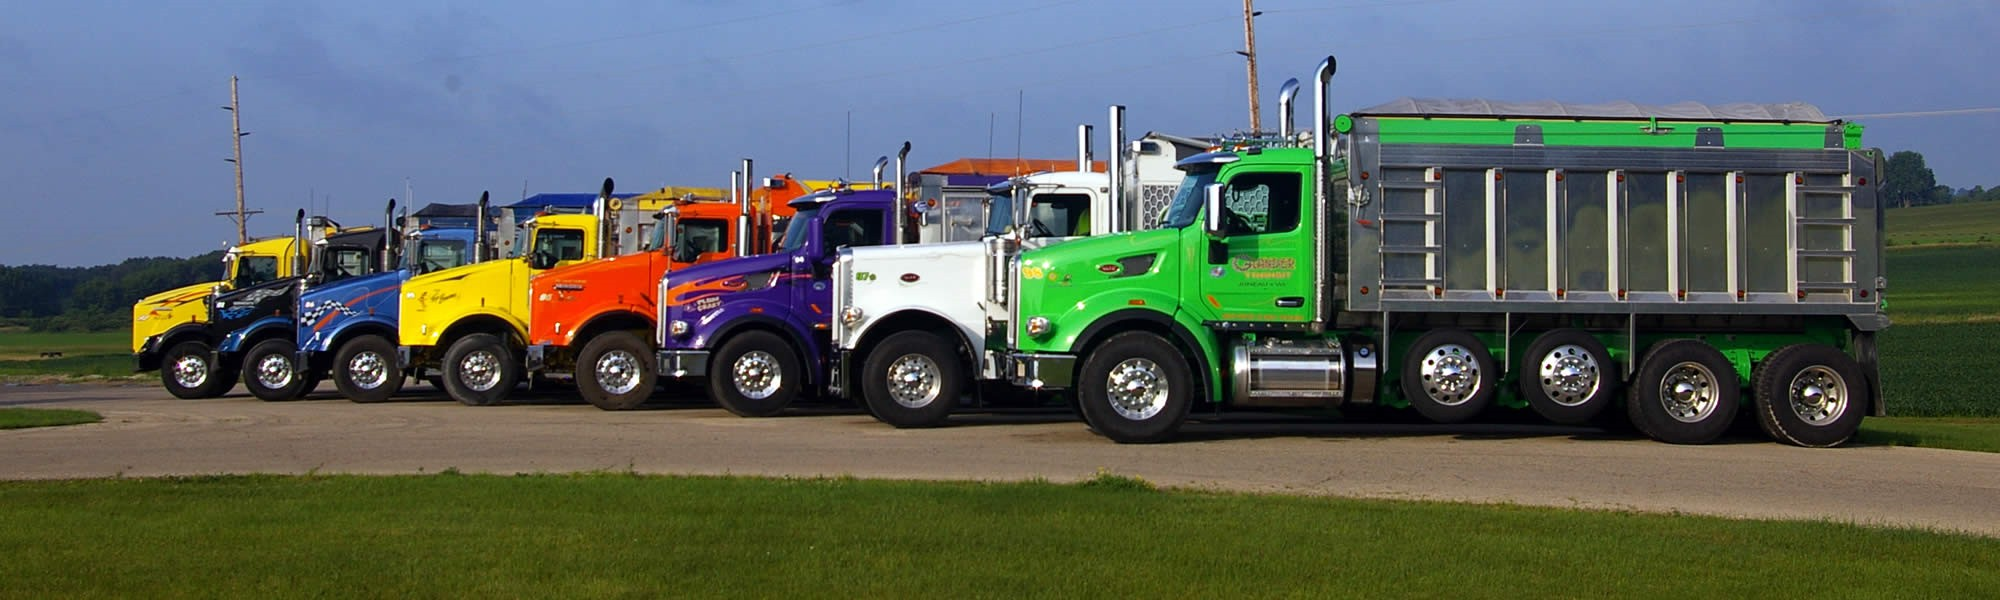 truck-hauling-services